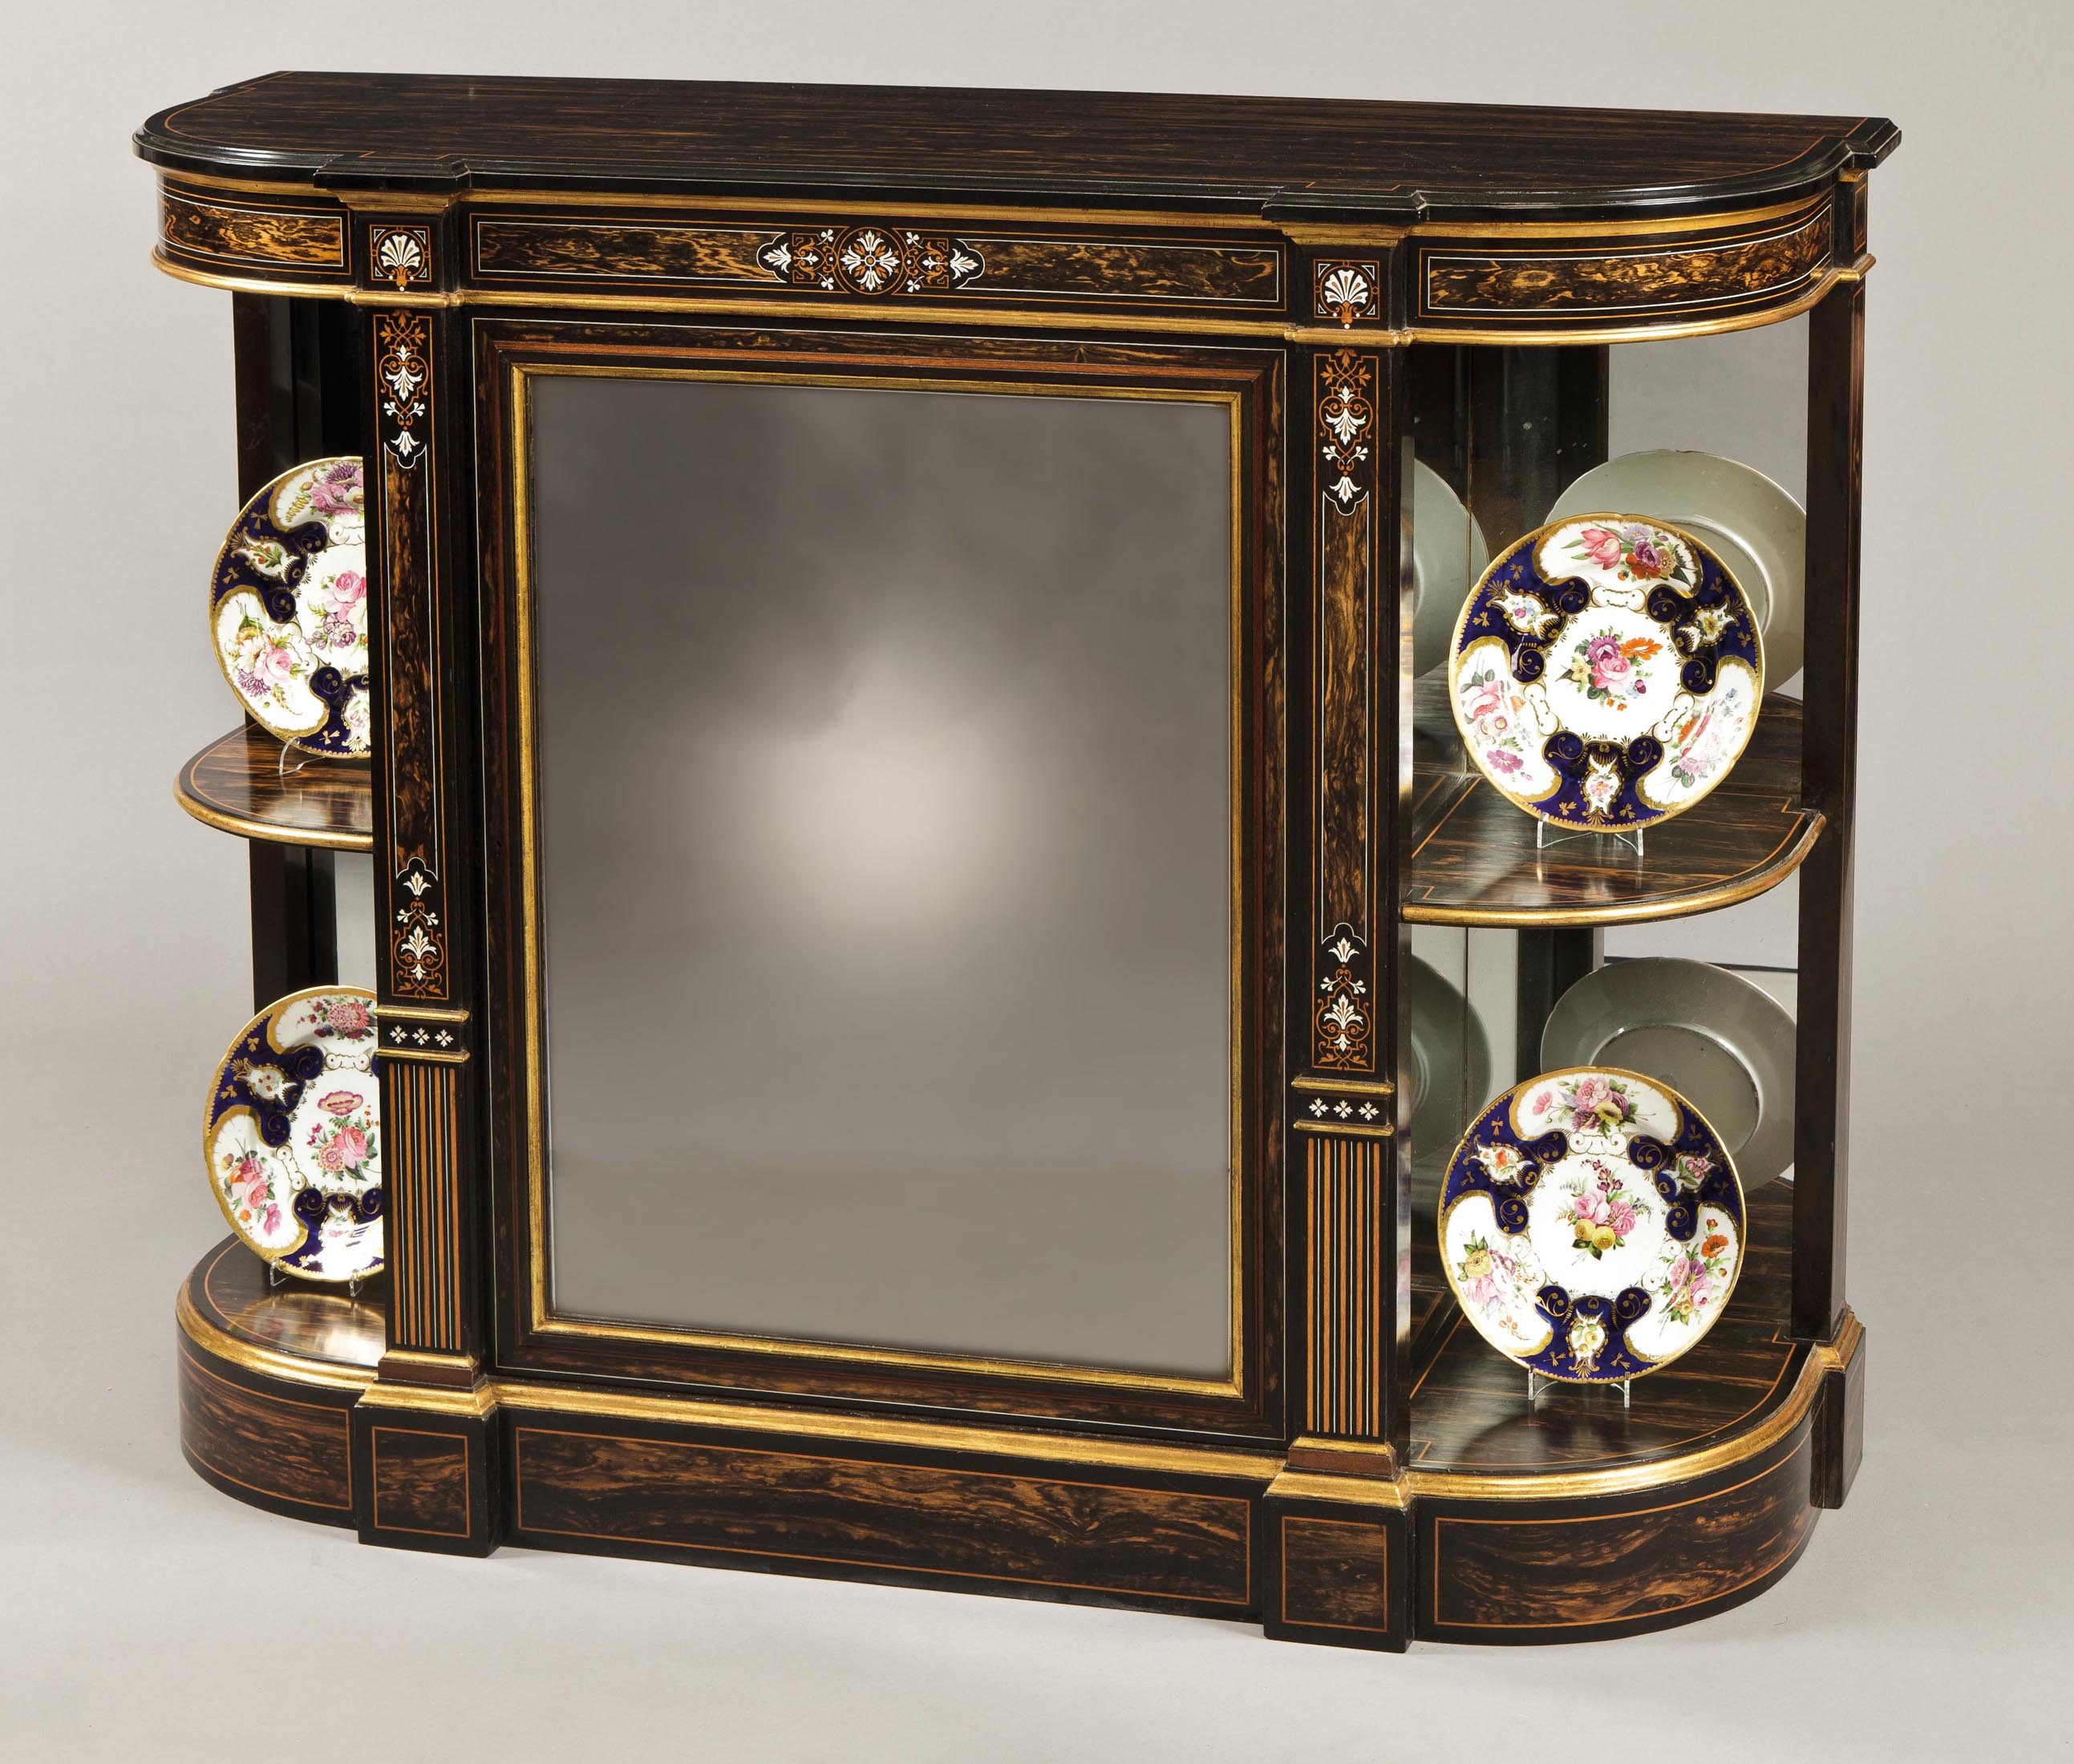 Good Antique Drawing Room Cabinet Attributed to Jackson & Graham